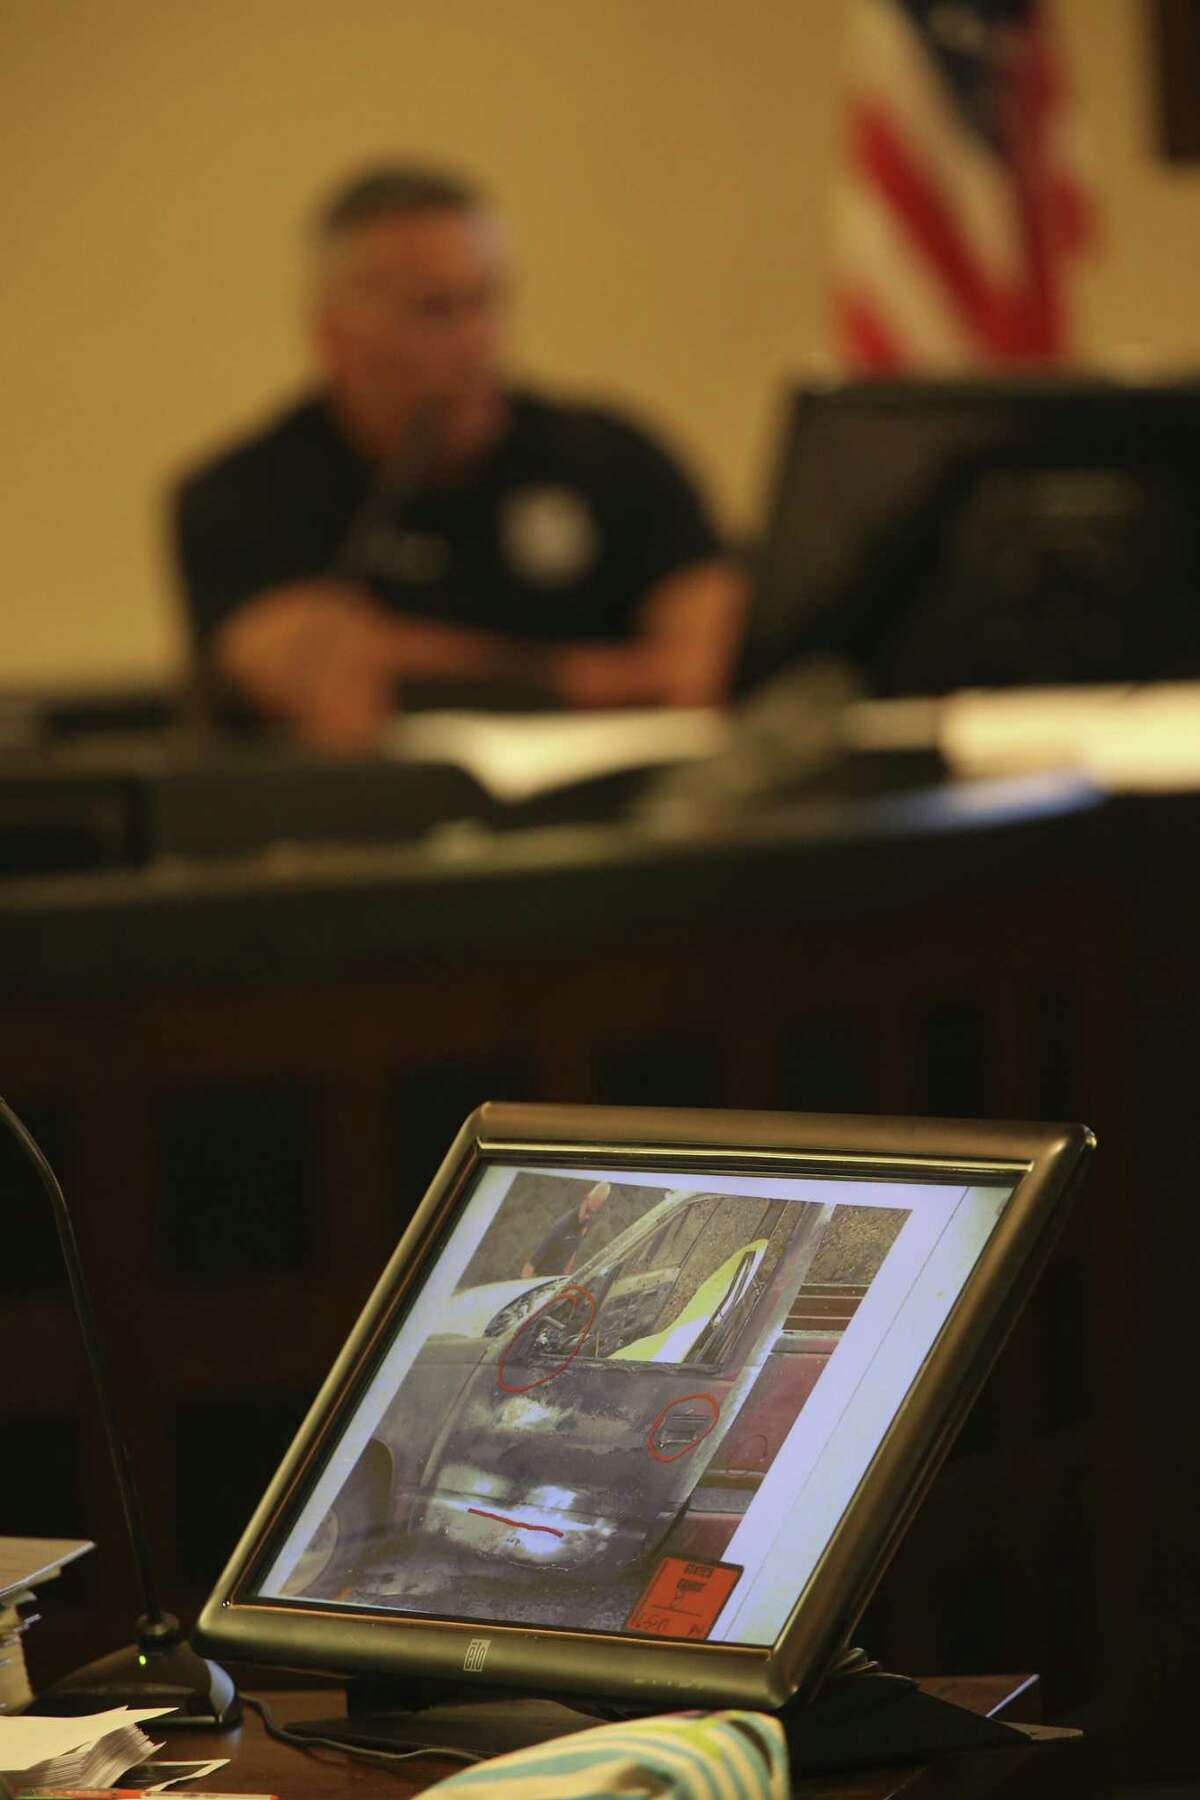 Photographs from the scene are introduced as evidence Tuesday during the second day of the murder trial of Joel Soto. San Antonio Fire Department Arson Investigator Juan Martinez is on the witness stand.